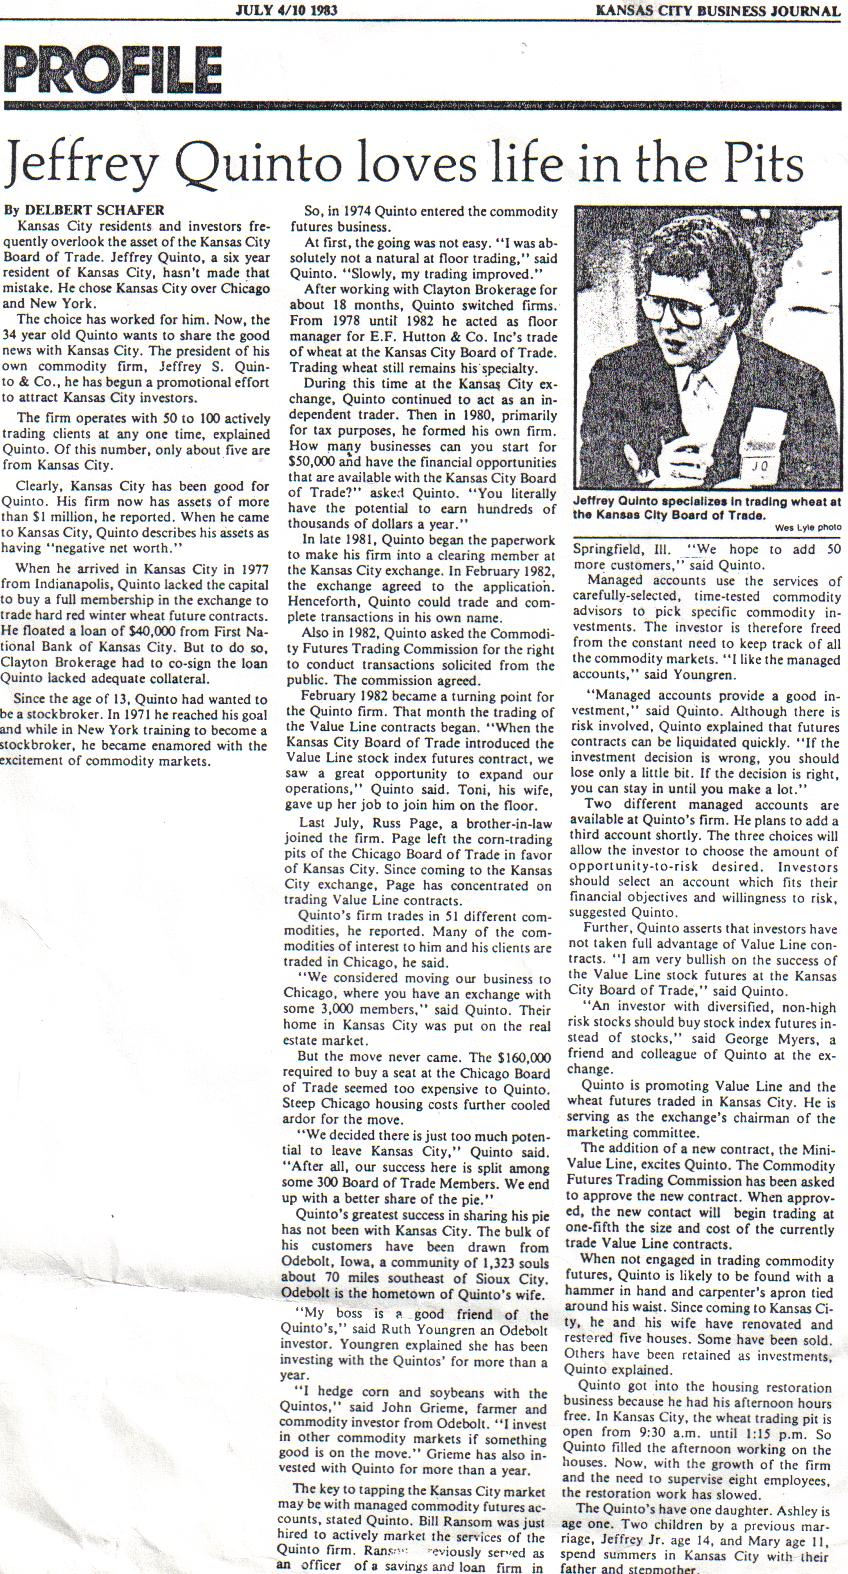 jeff-quinto-loves-life-in-the-pits-from-kc-star-in-1983.JPG